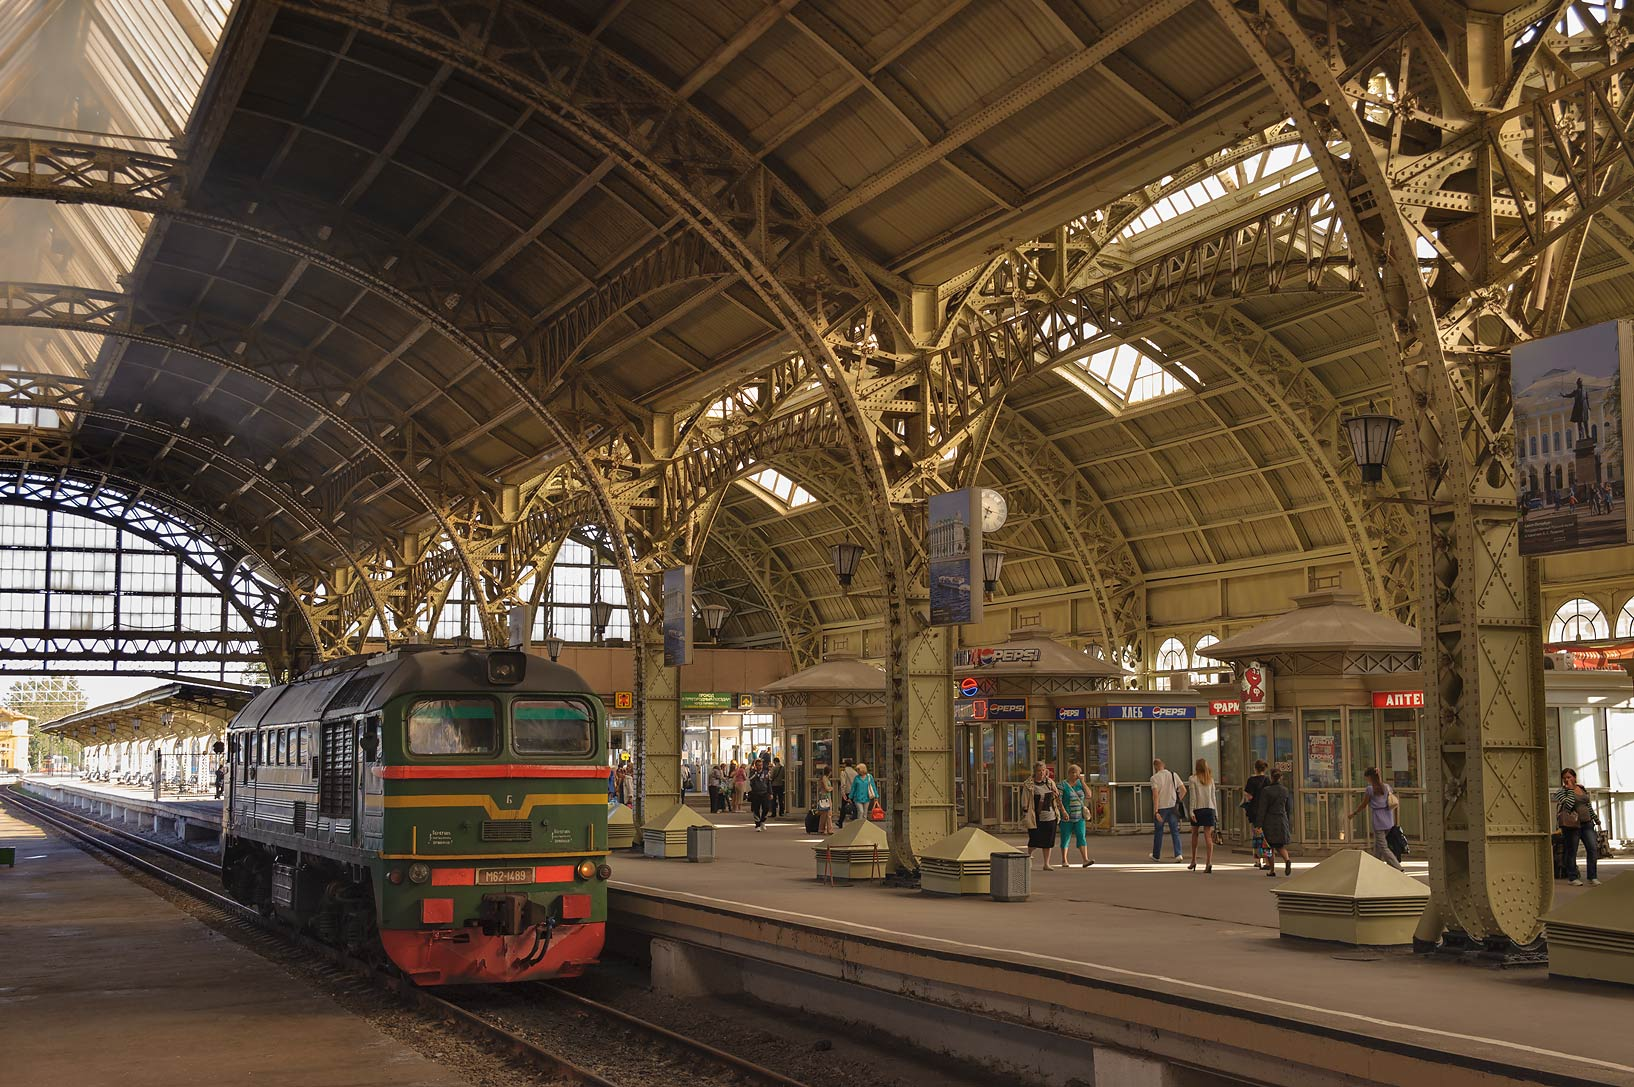 Train in Vitebsky Railway Station. St.Petersburg, Russia